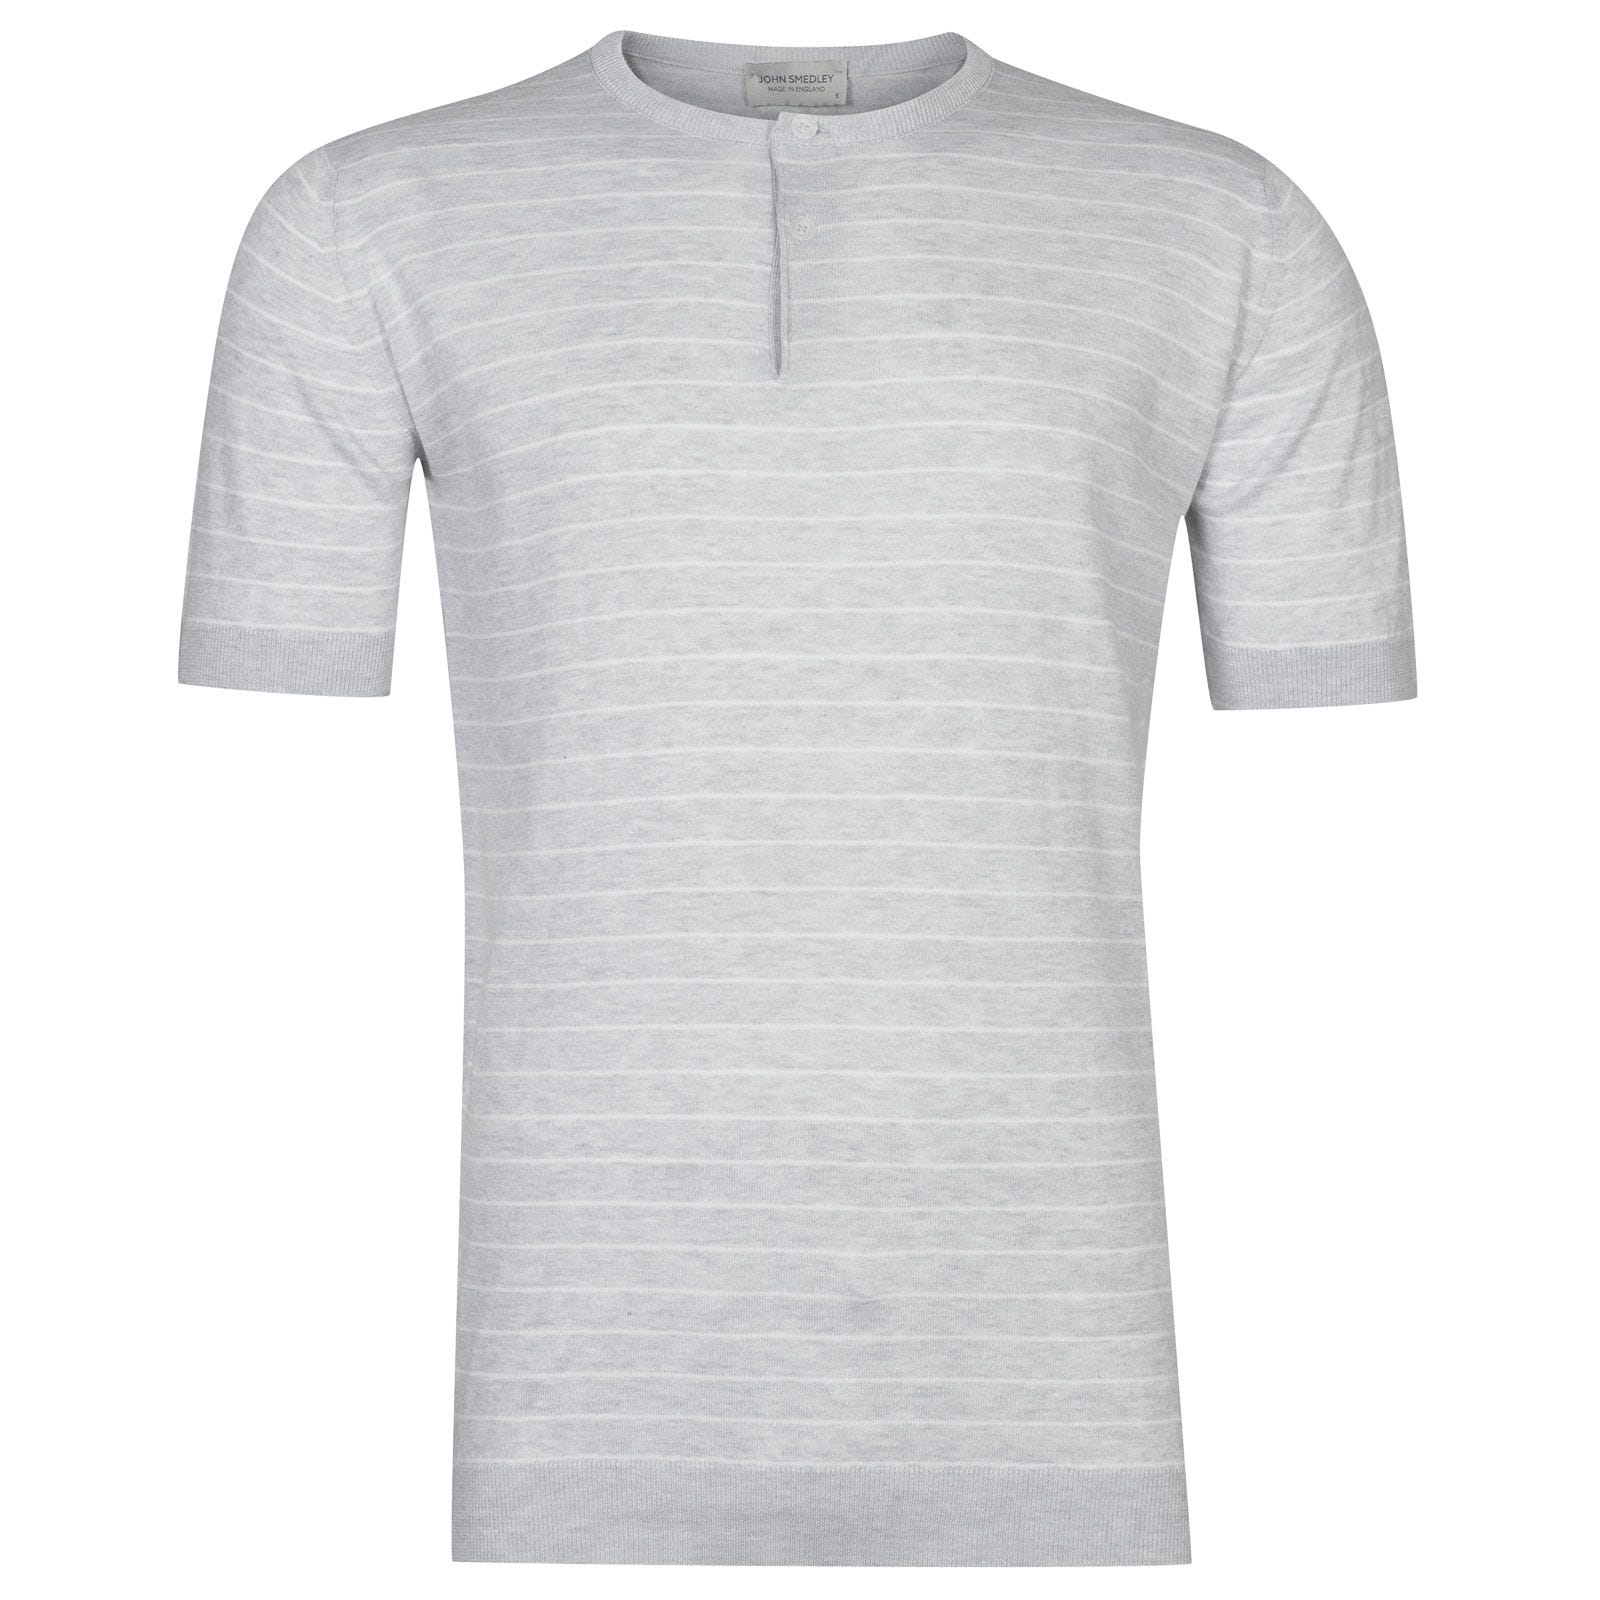 John Smedley Ungers in Feather Grey Henley Shirt -Xxl